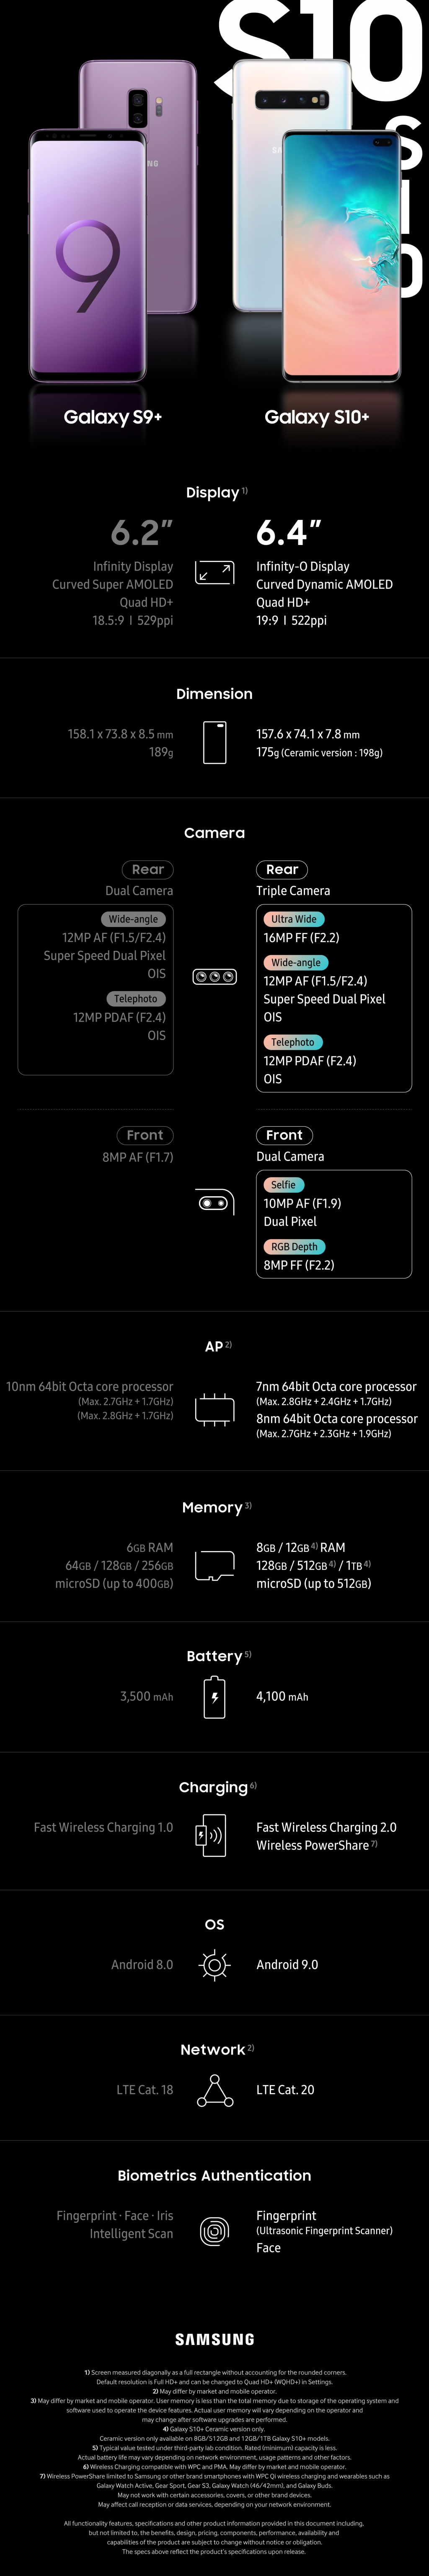 [Infographic] Spec Comparison: The Galaxy S10+ vs. the Galaxy S9+